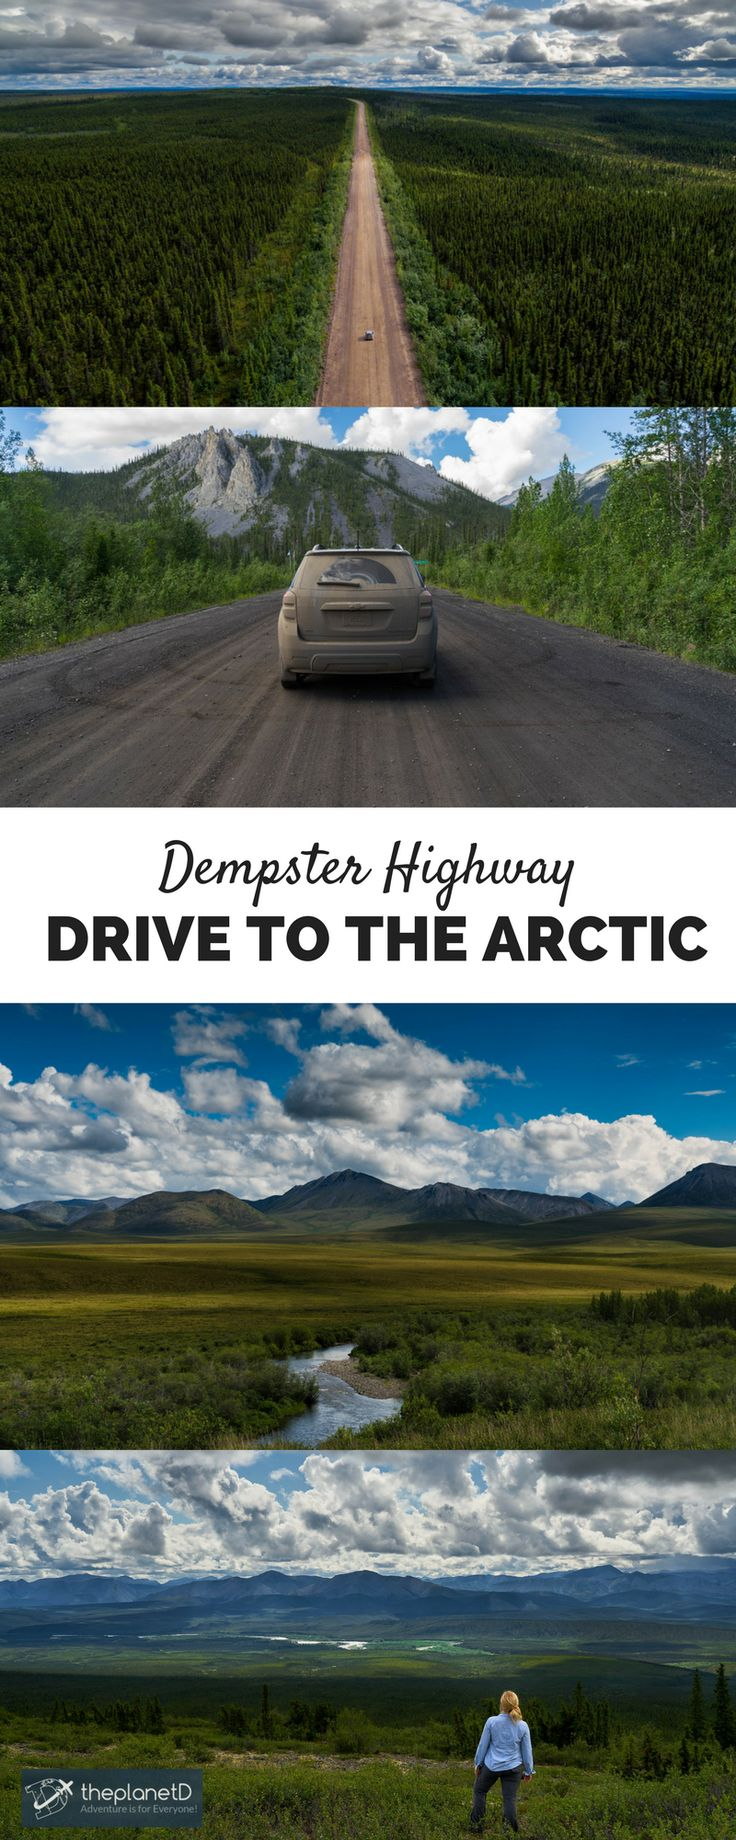 Did you know you can actually drive to the Arctic? – Yes you Can! On the Dempster Highway: 736 km road from the far Arctic in Inuvik in the Northwest Territories, to Dawson City in the Yukon, Canada | The Planet D Adventure Travel Blog